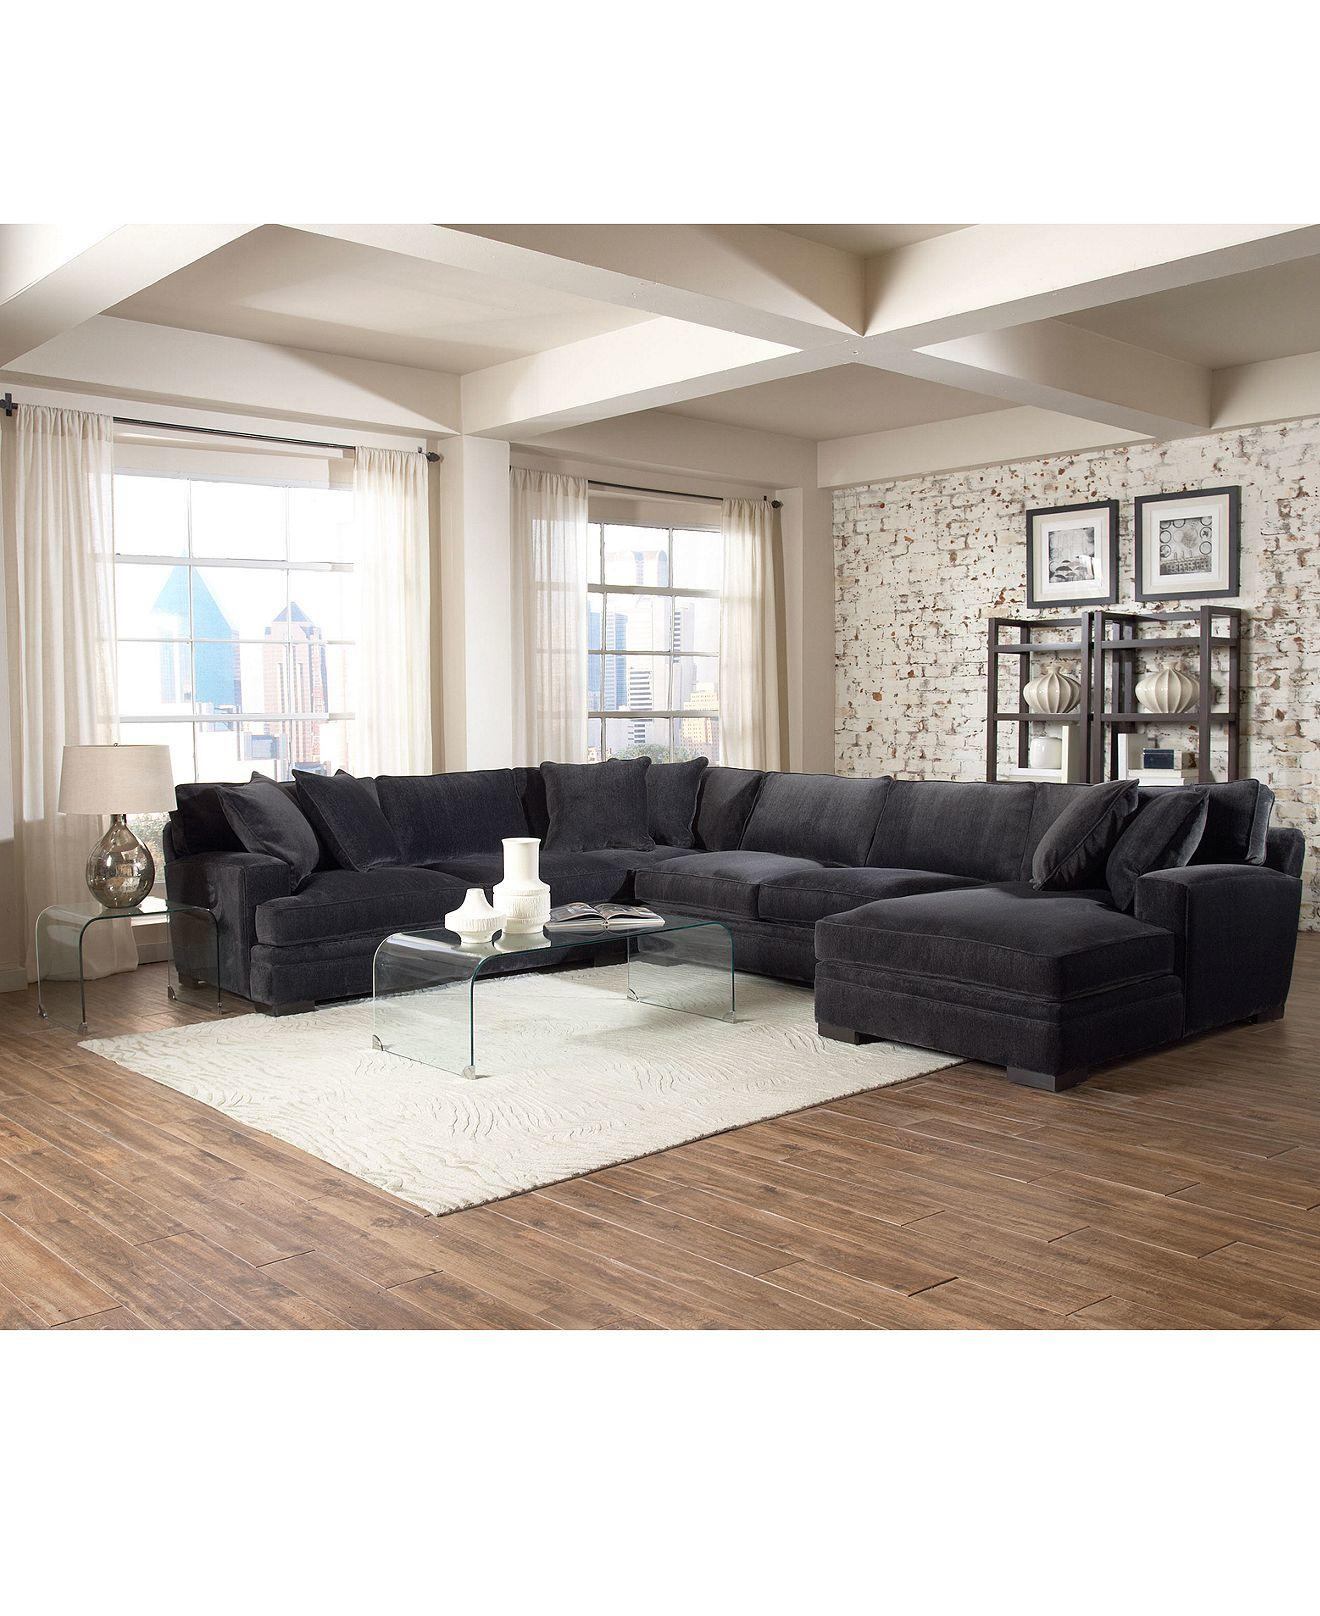 teddy fabric sectional living room furniture collection furniture macy s